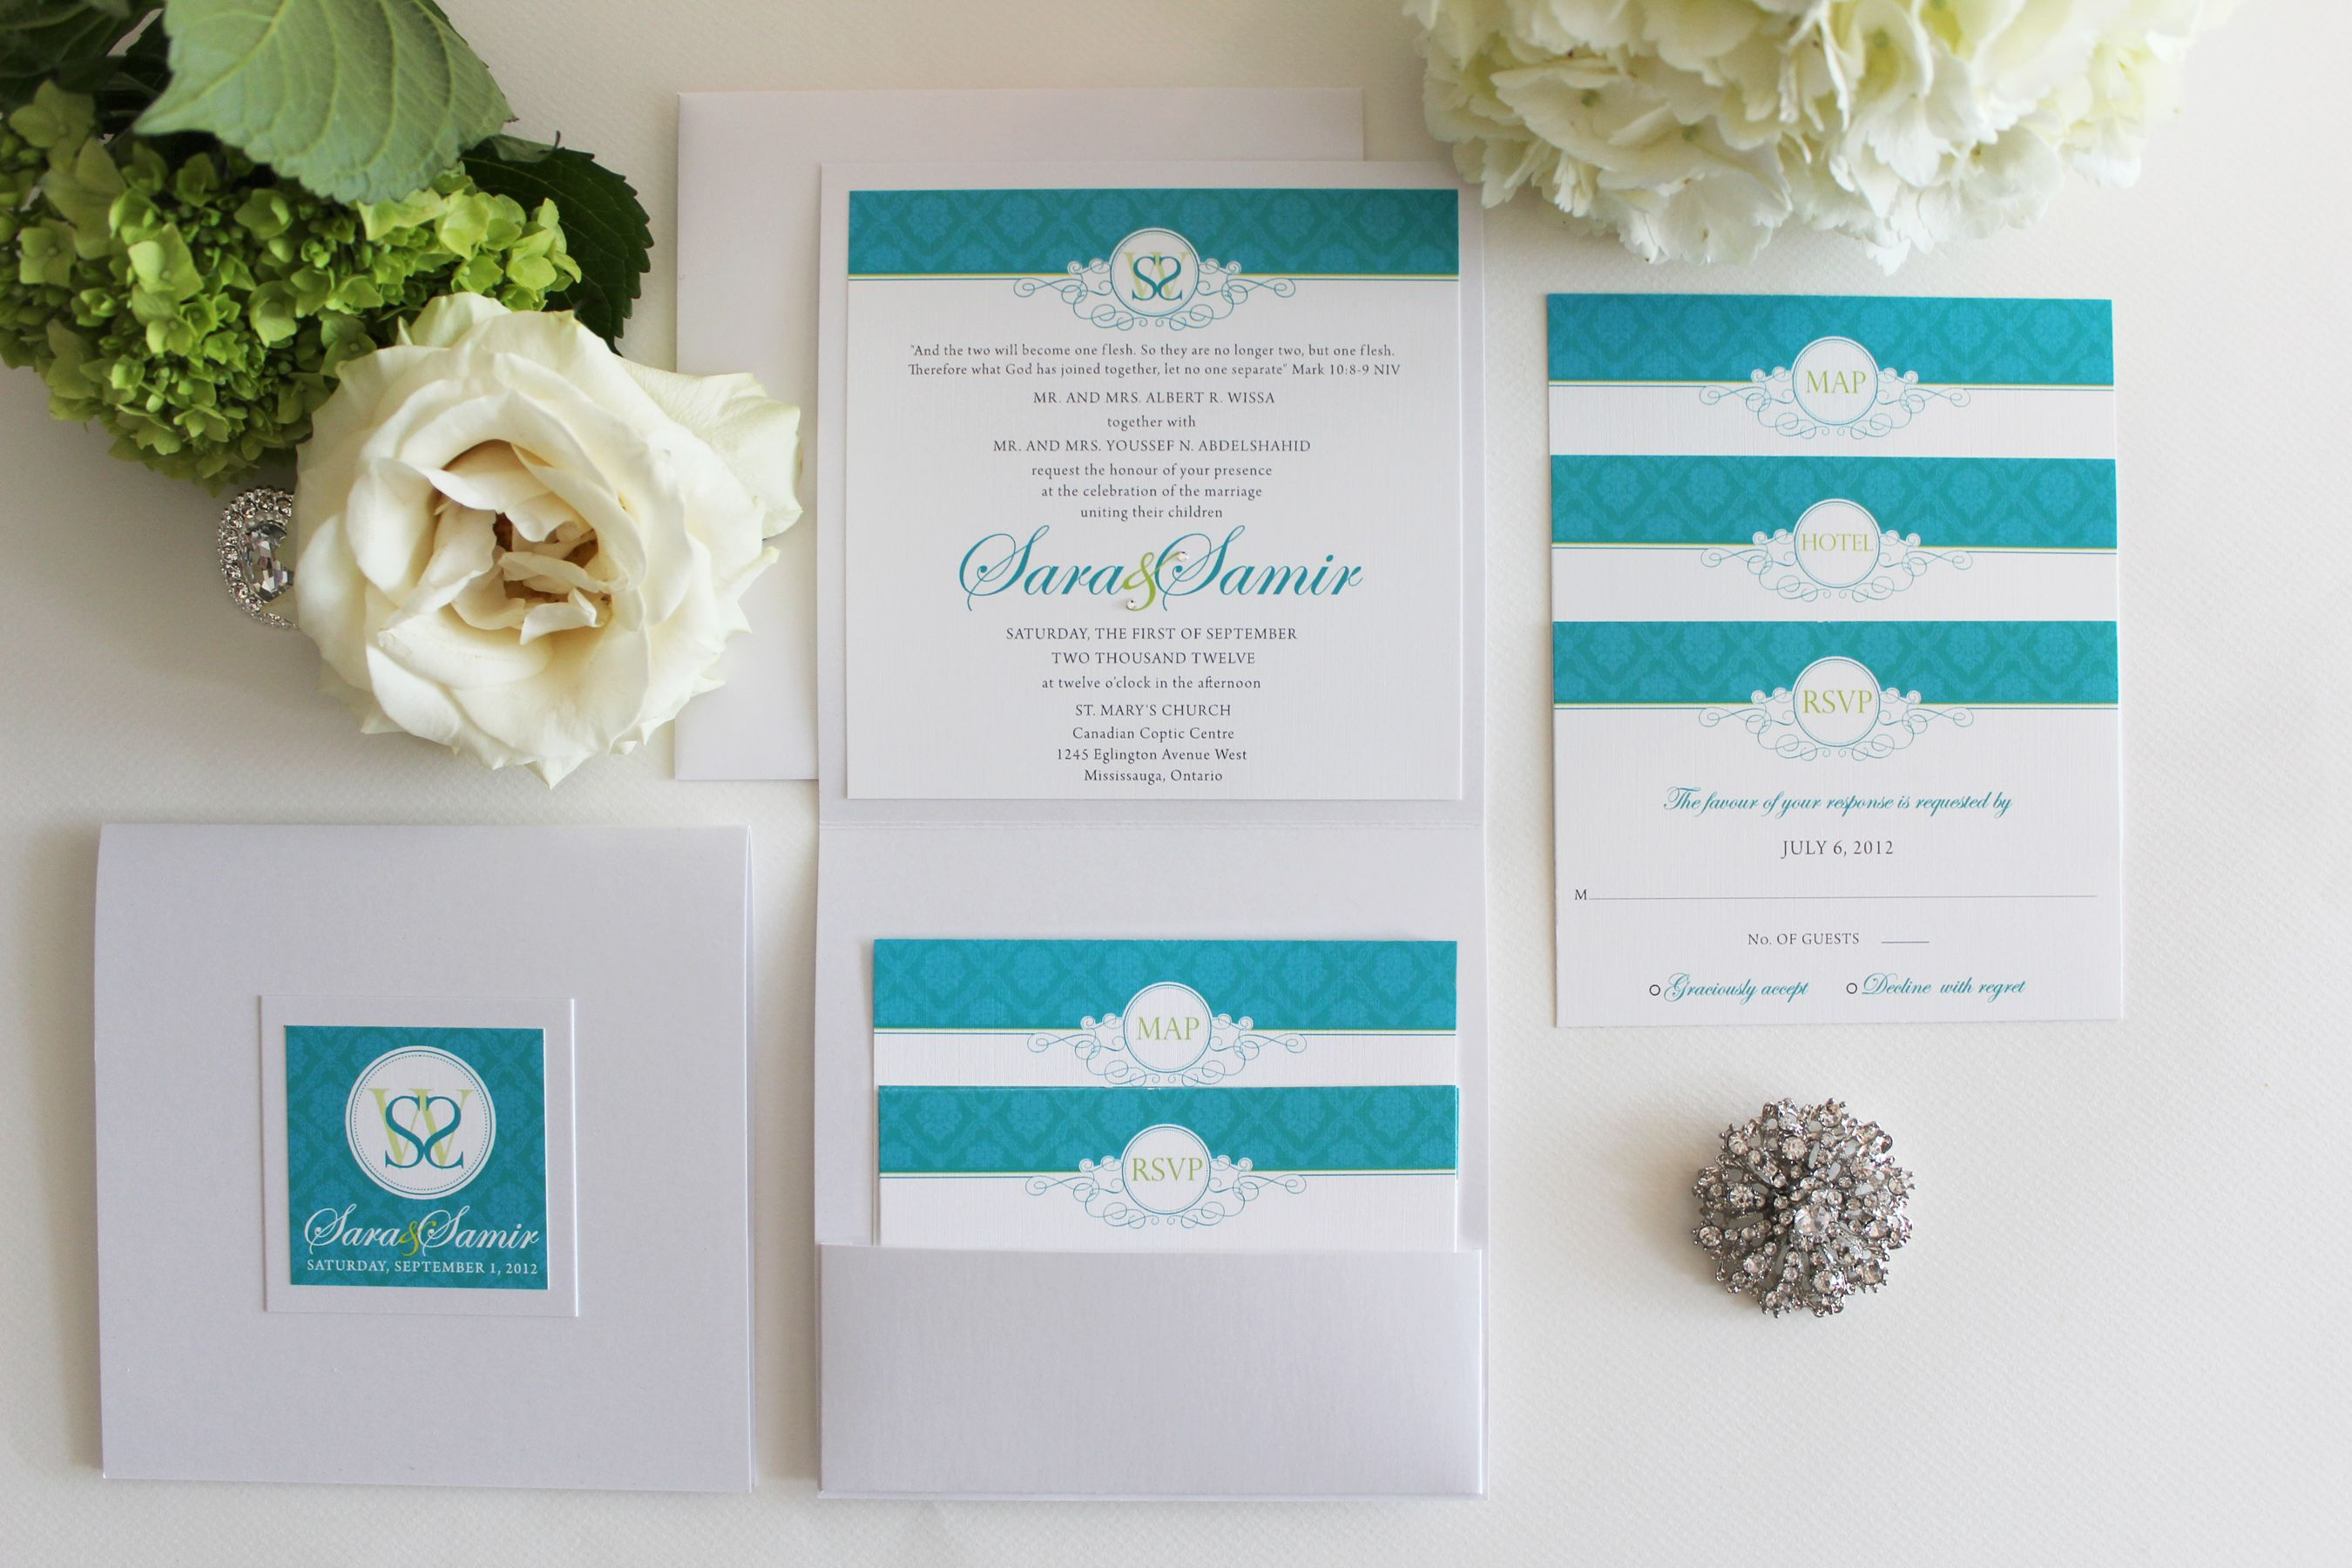 Bright Teal and Lime Green Wedding Invitation Designed by #inkandpaper @Lisainkandpaper #wedding invitations